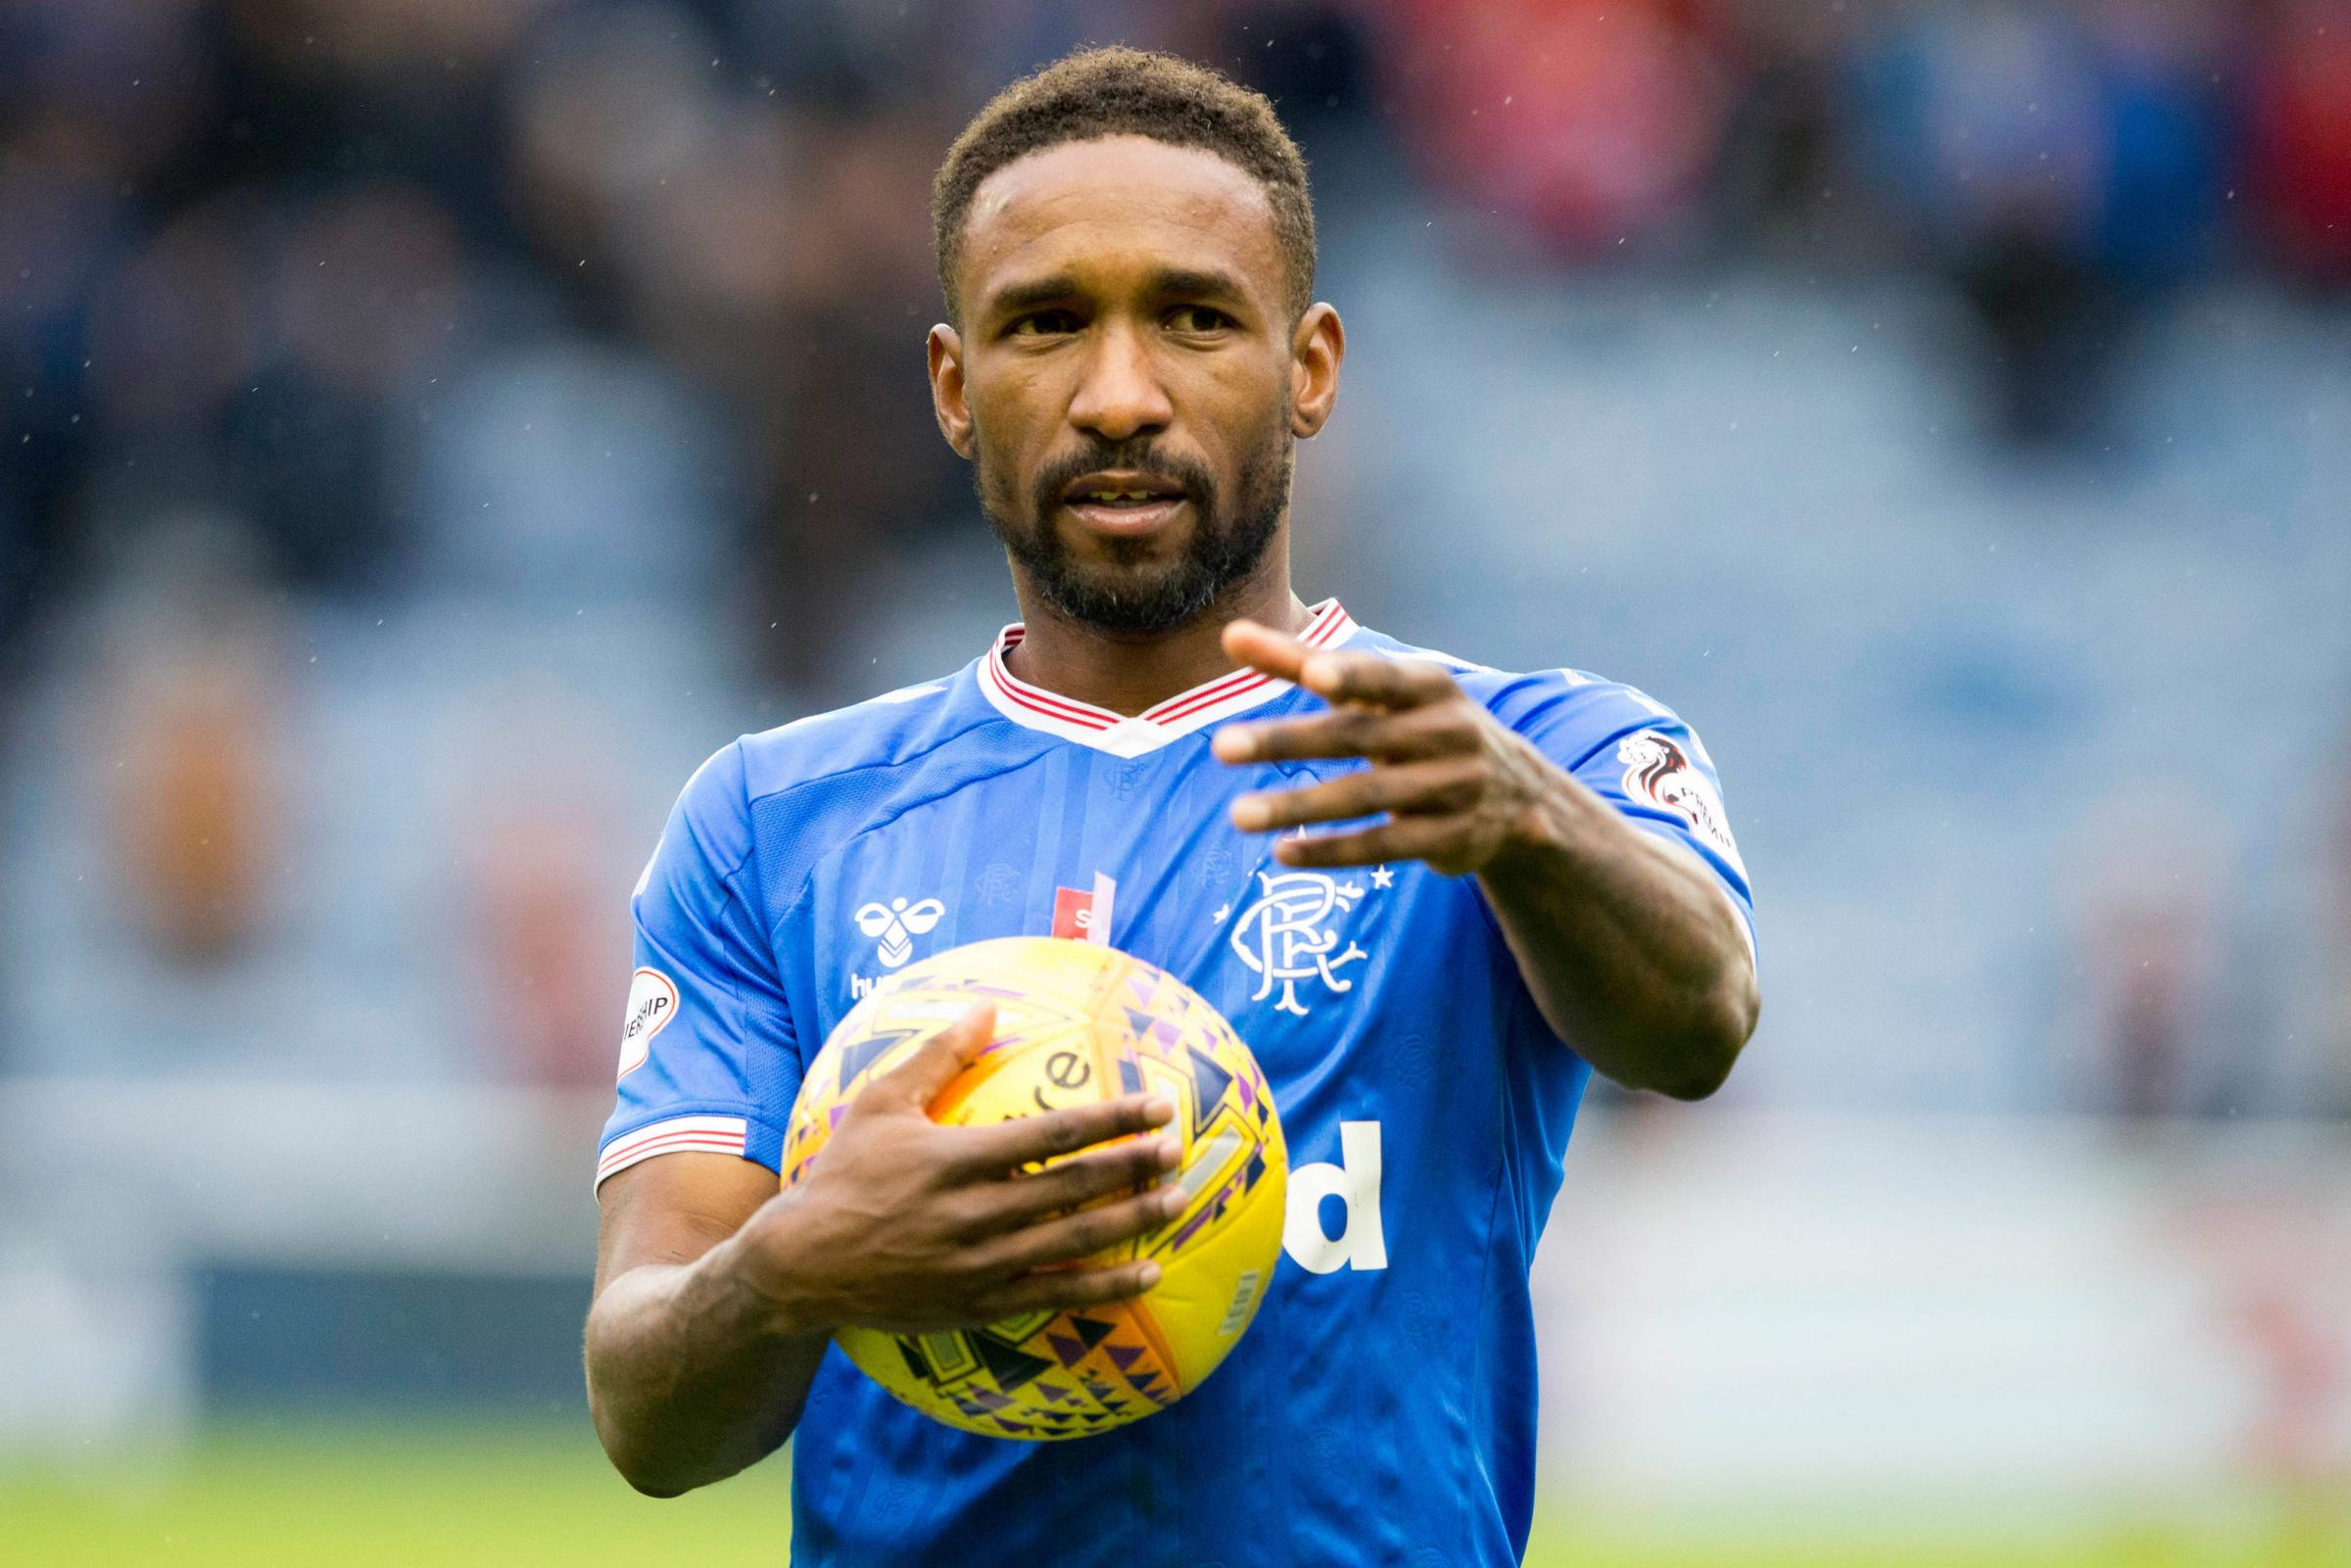 'For me to secure my future here for another year is really special' - Jermain Defoe to join Rangers on permanent deal in the summer